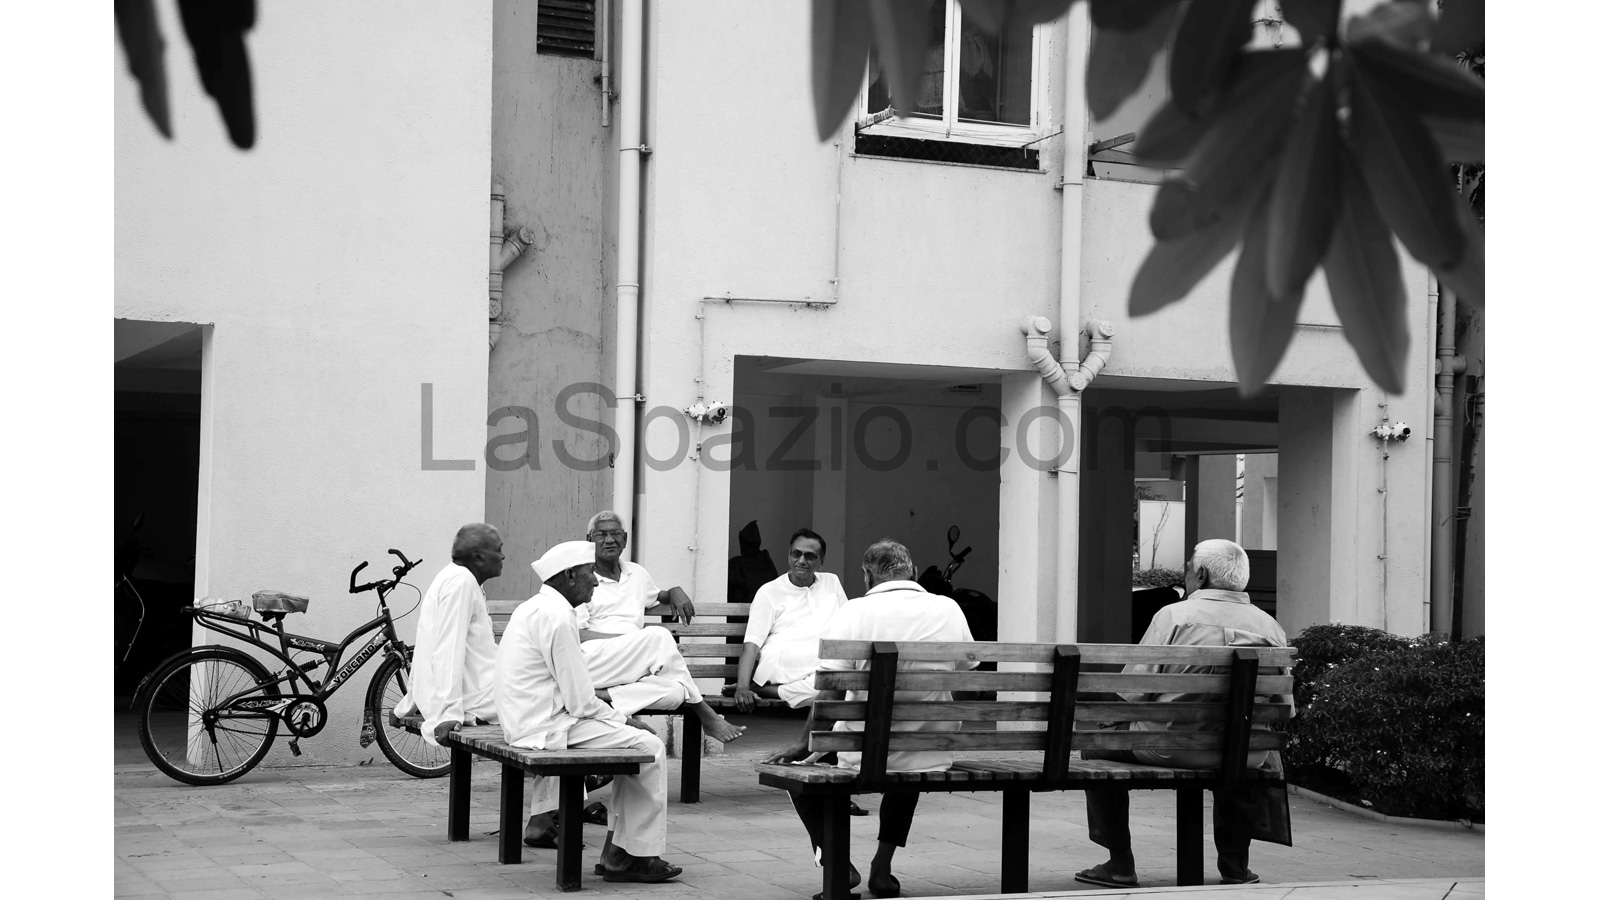 Laspazio Courtyard Sit Outs